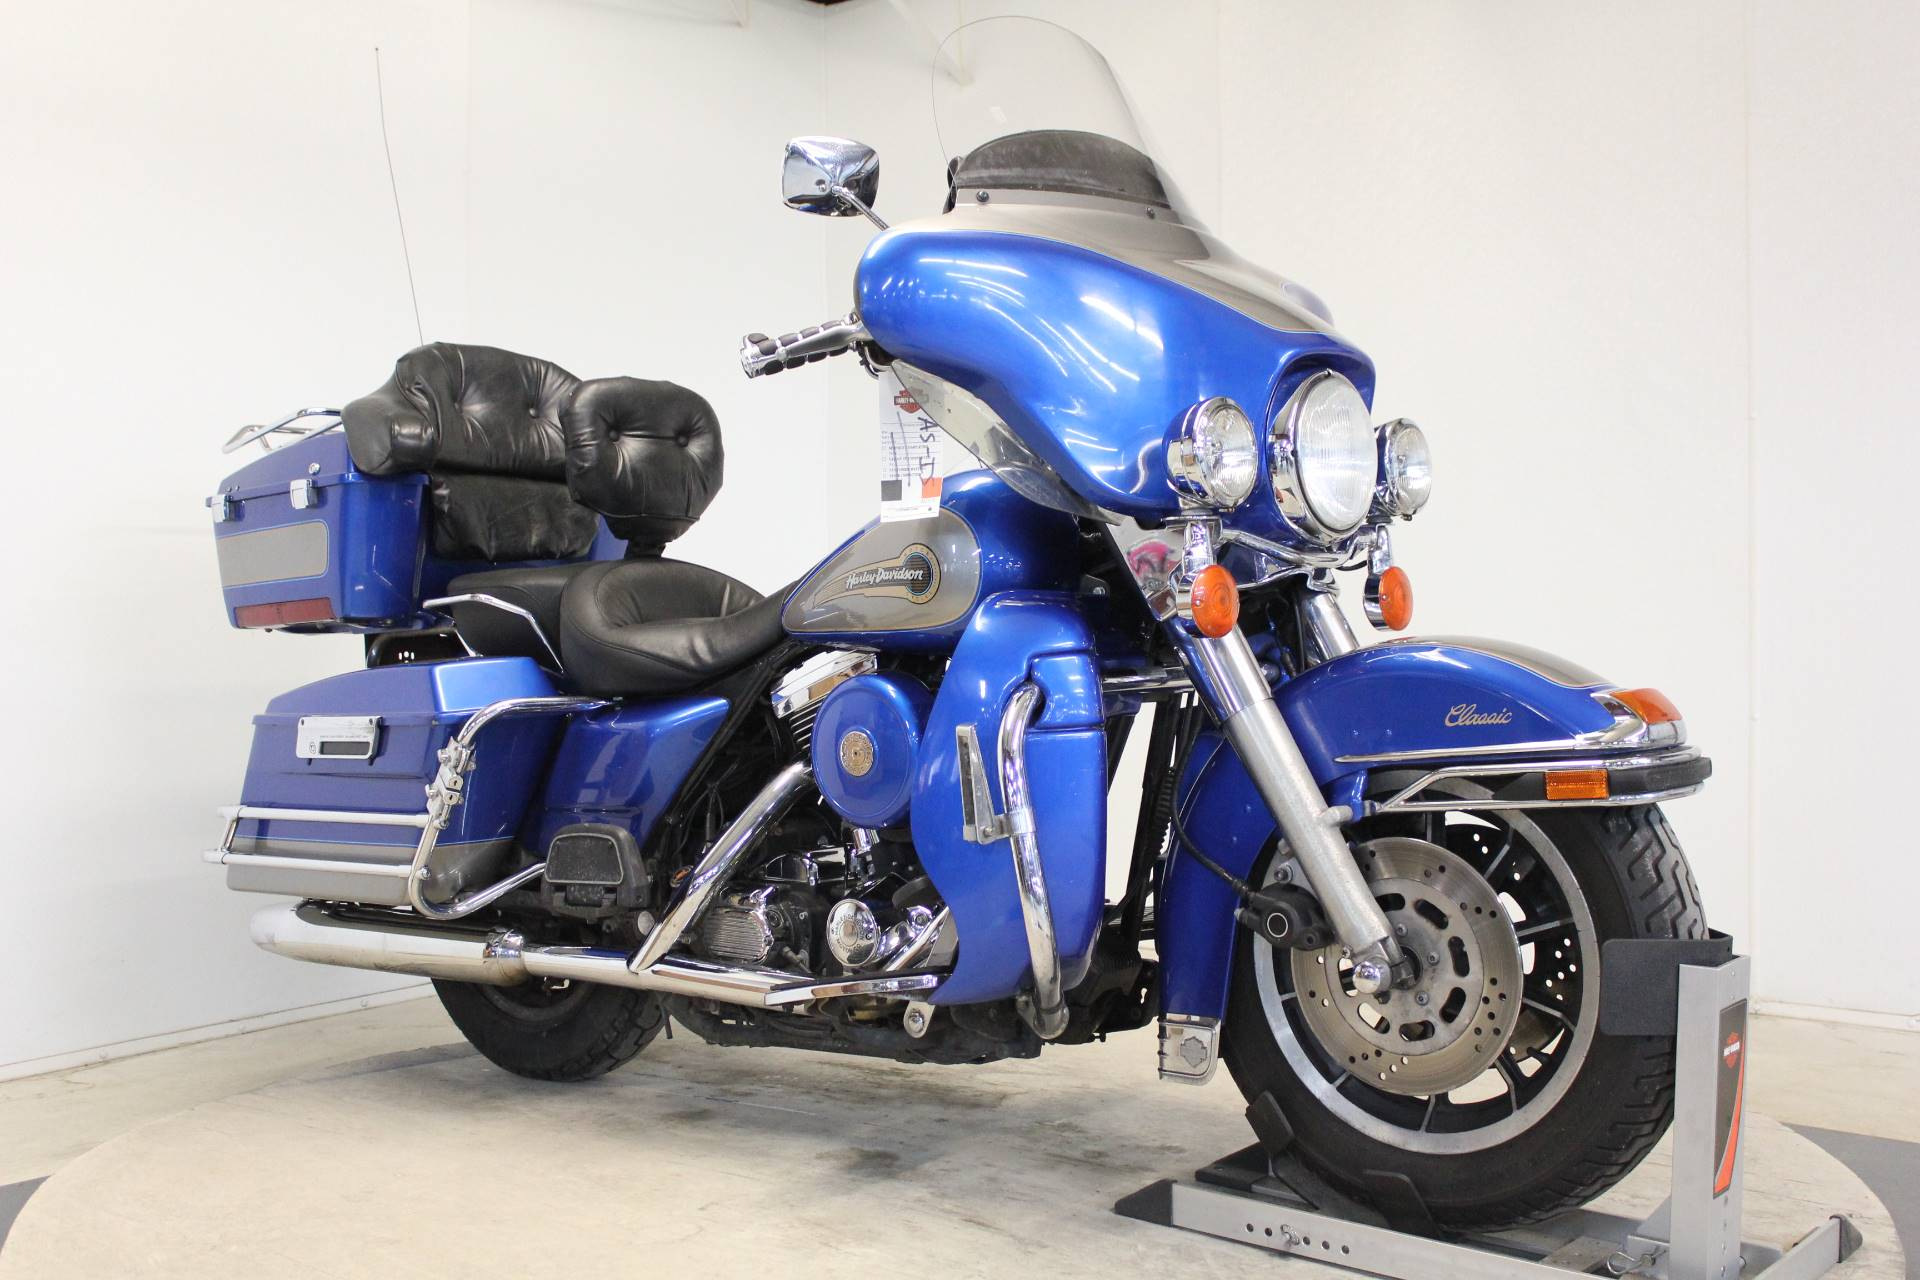 1996 Harley-Davidson Electra Glide Ultra Classic in Pittsfield, Massachusetts